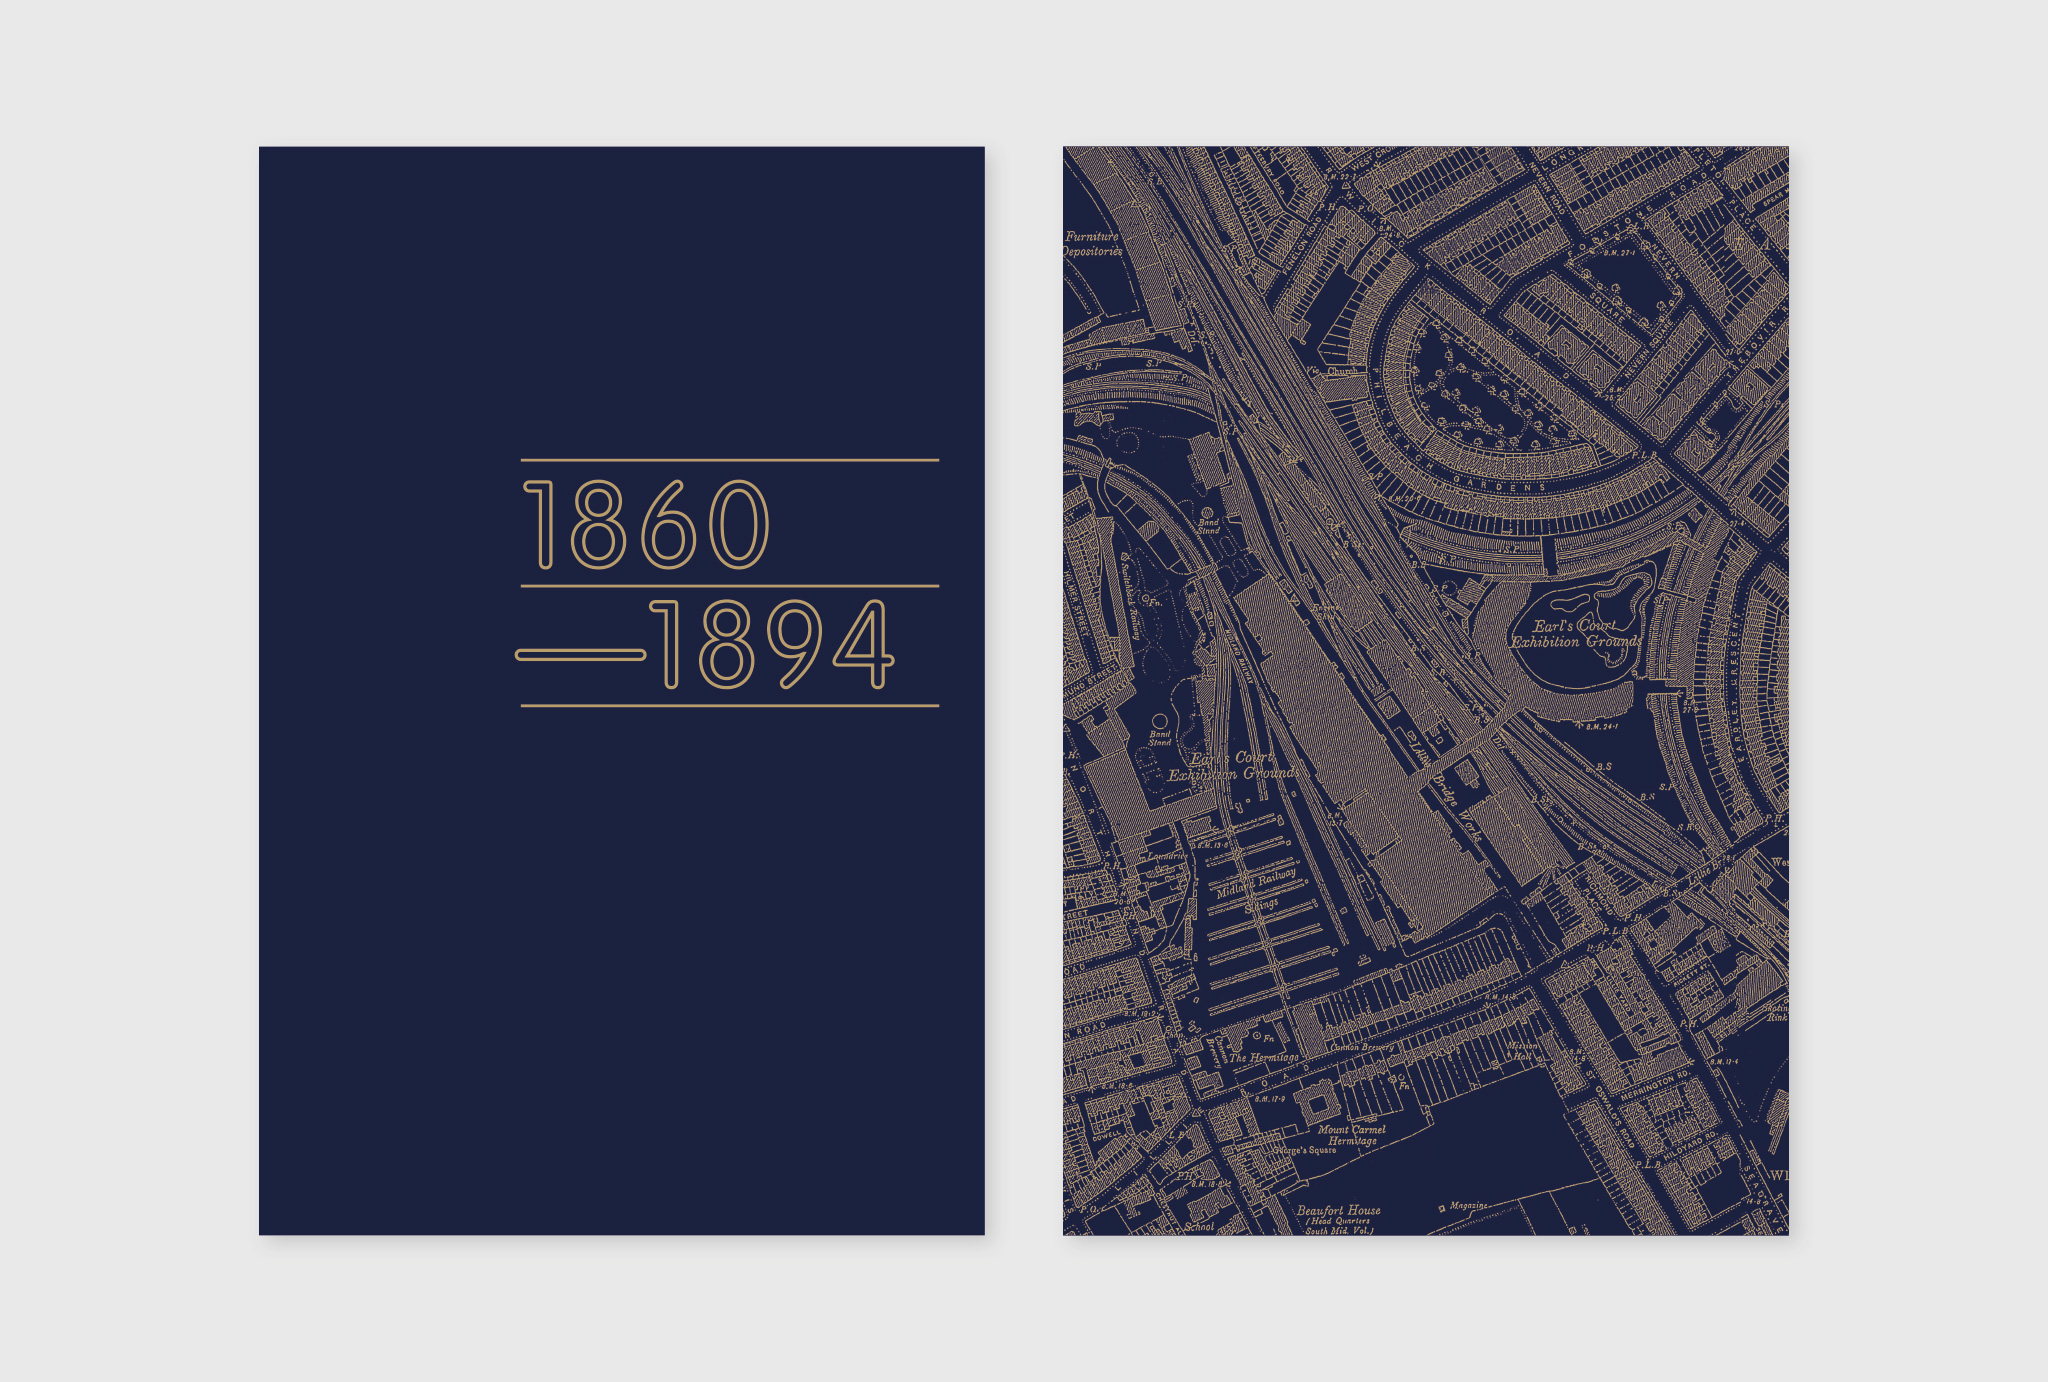 '1860-1894' written in grey on a dark blue exhibition panels, next to a exhibition panels with area map of Earls Court